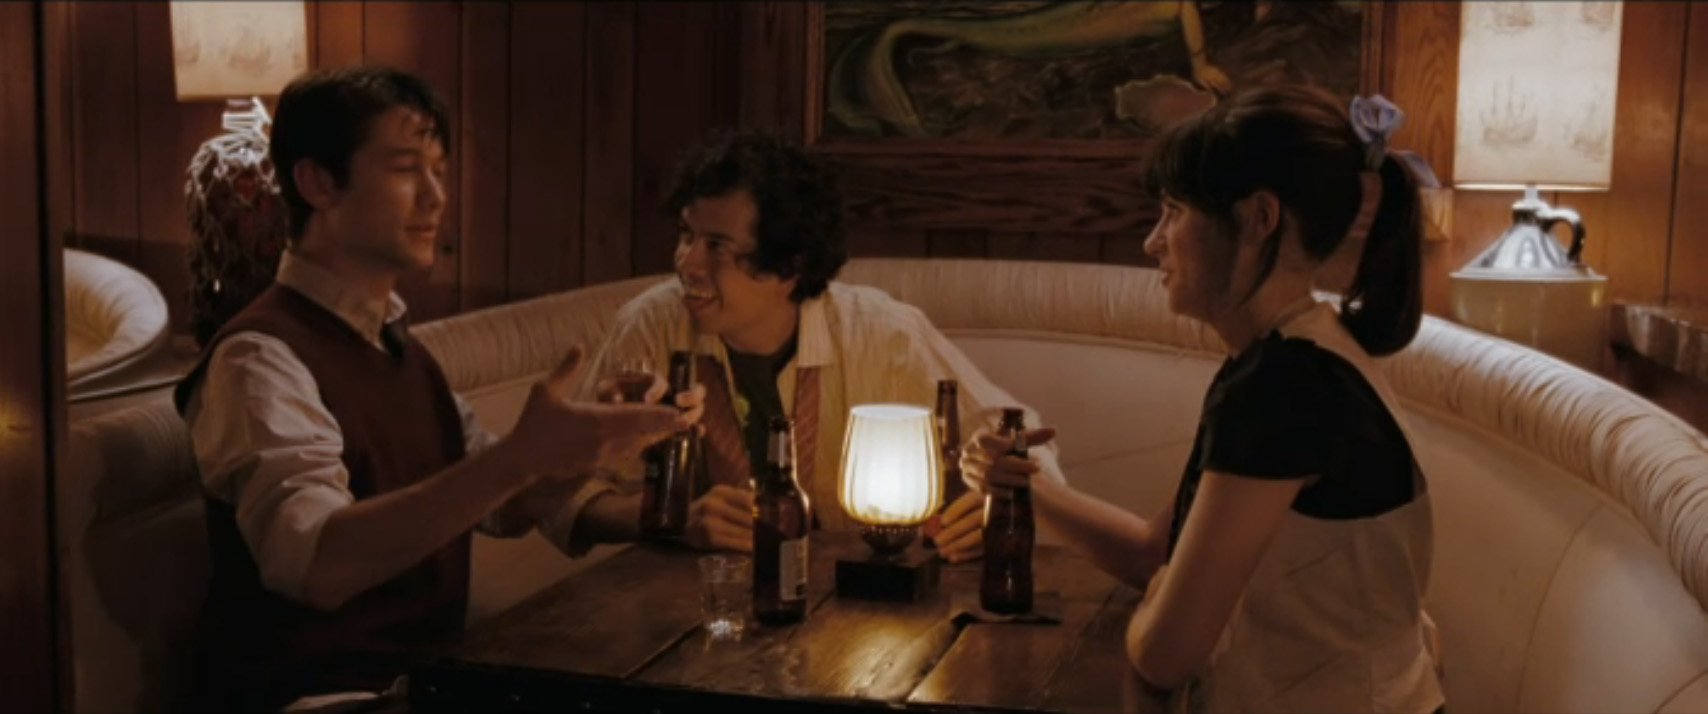 Architects In Movies 03 500 Days Of Summer Rmb Design